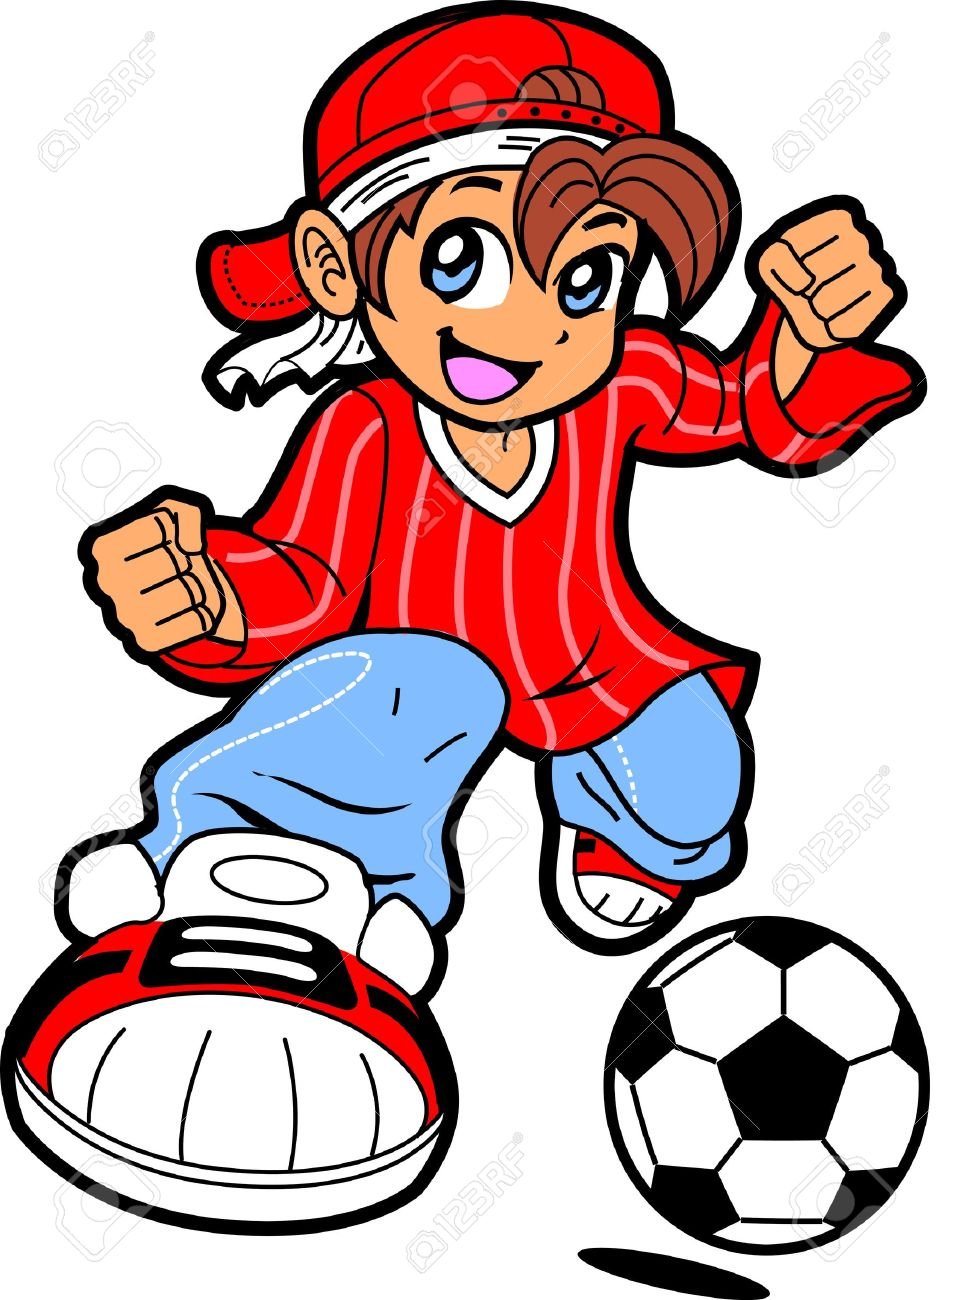 Happy Young Man Boy Soccer Player In Anime Manga Cartoon Style.